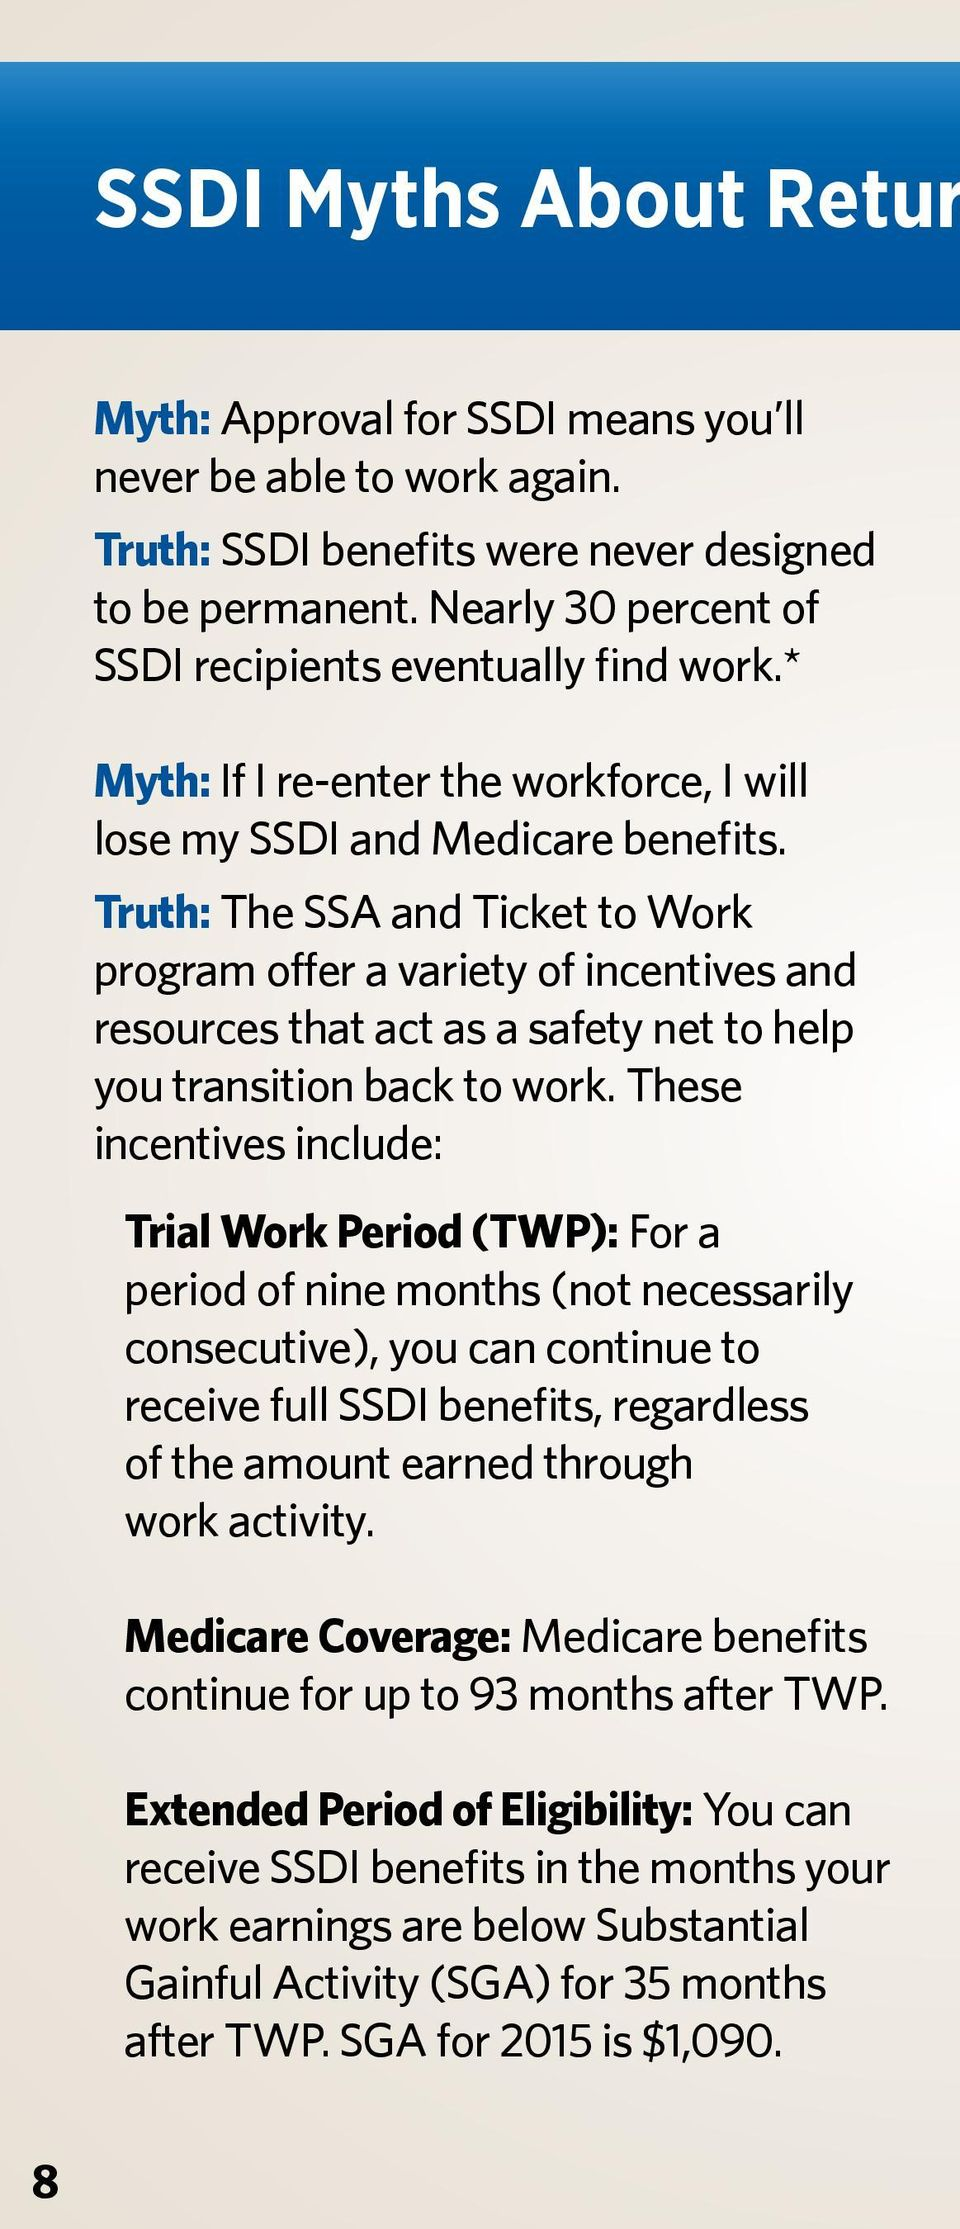 Truth: The SSA and Ticket to Work program offer a variety of incentives and resources that act as a safety net to help you transition back to work.